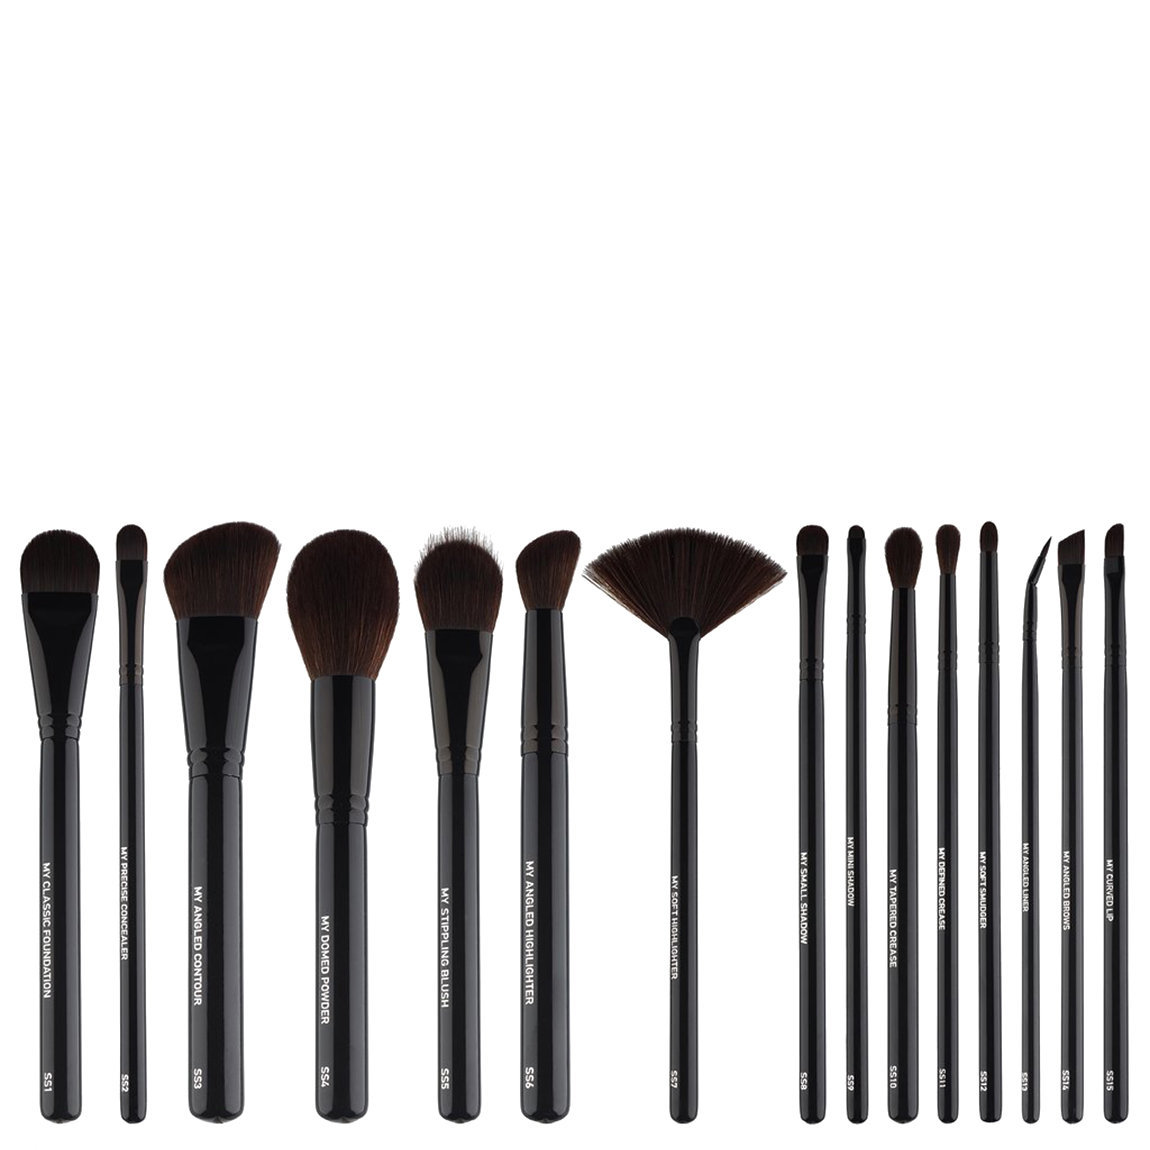 MYKITCO. My Signature Synthetics Brush Collection product swatch.